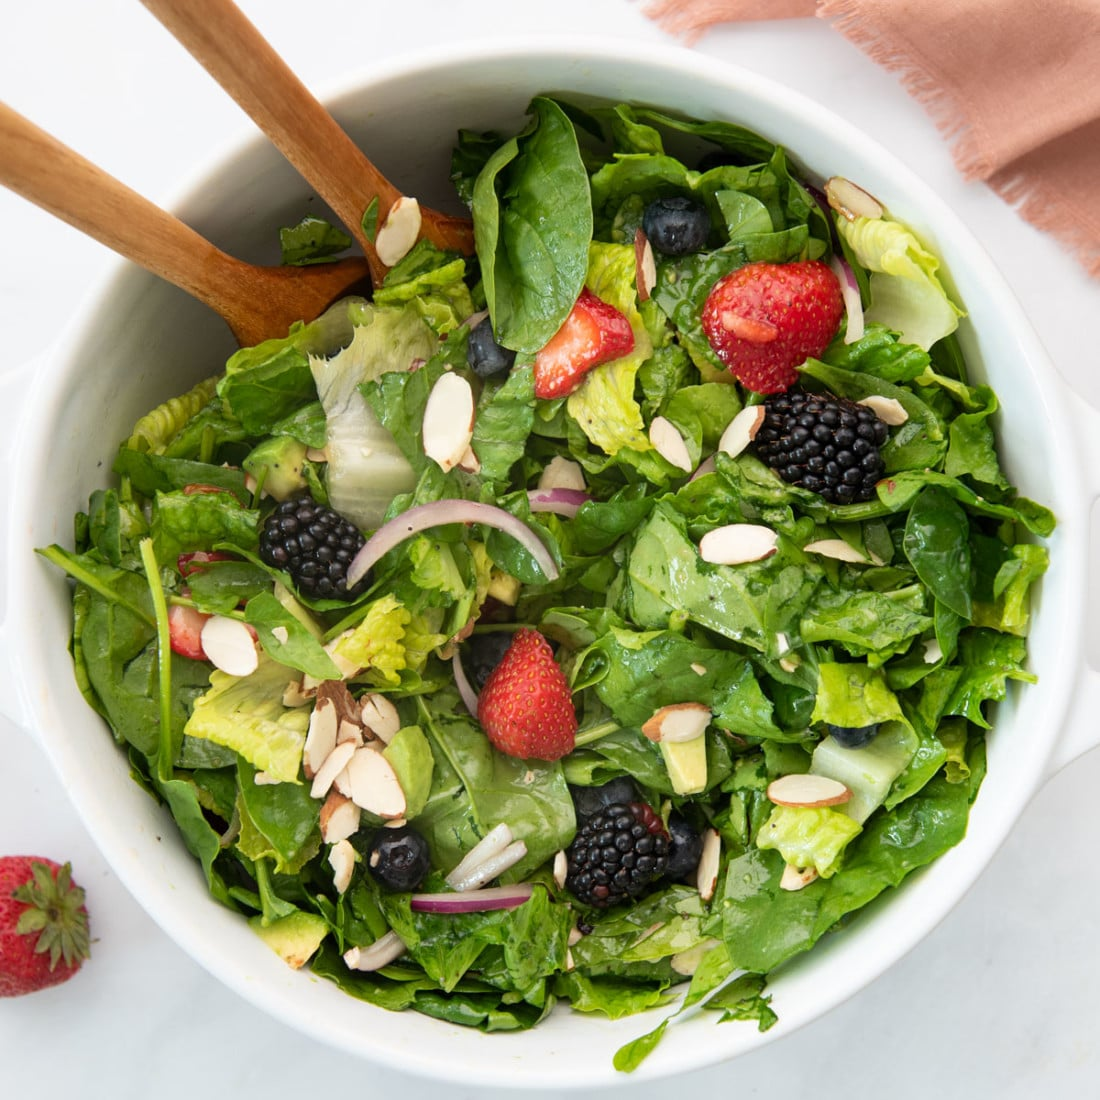 berry salad in large white bowl with wood salad spoons